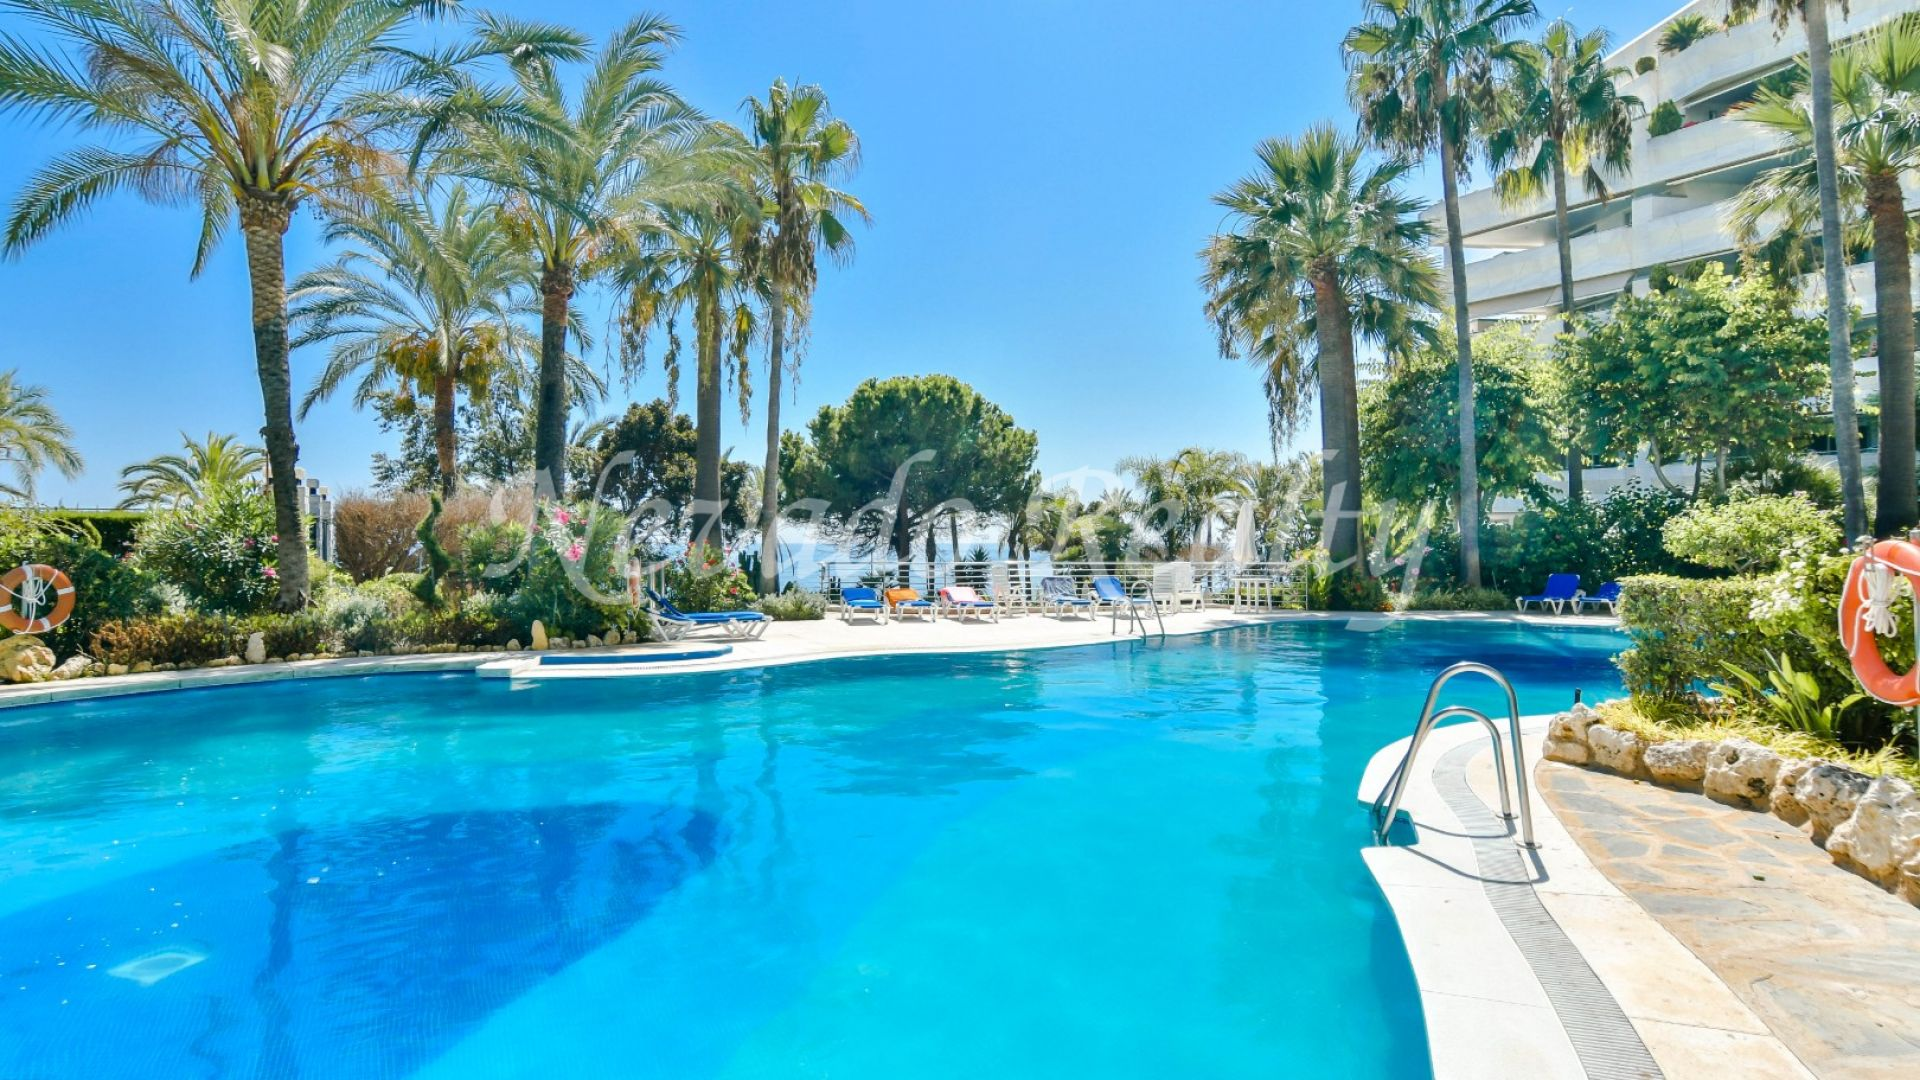 Apartment for sale in first line beach of Marbella in luxury building with 24 hours security